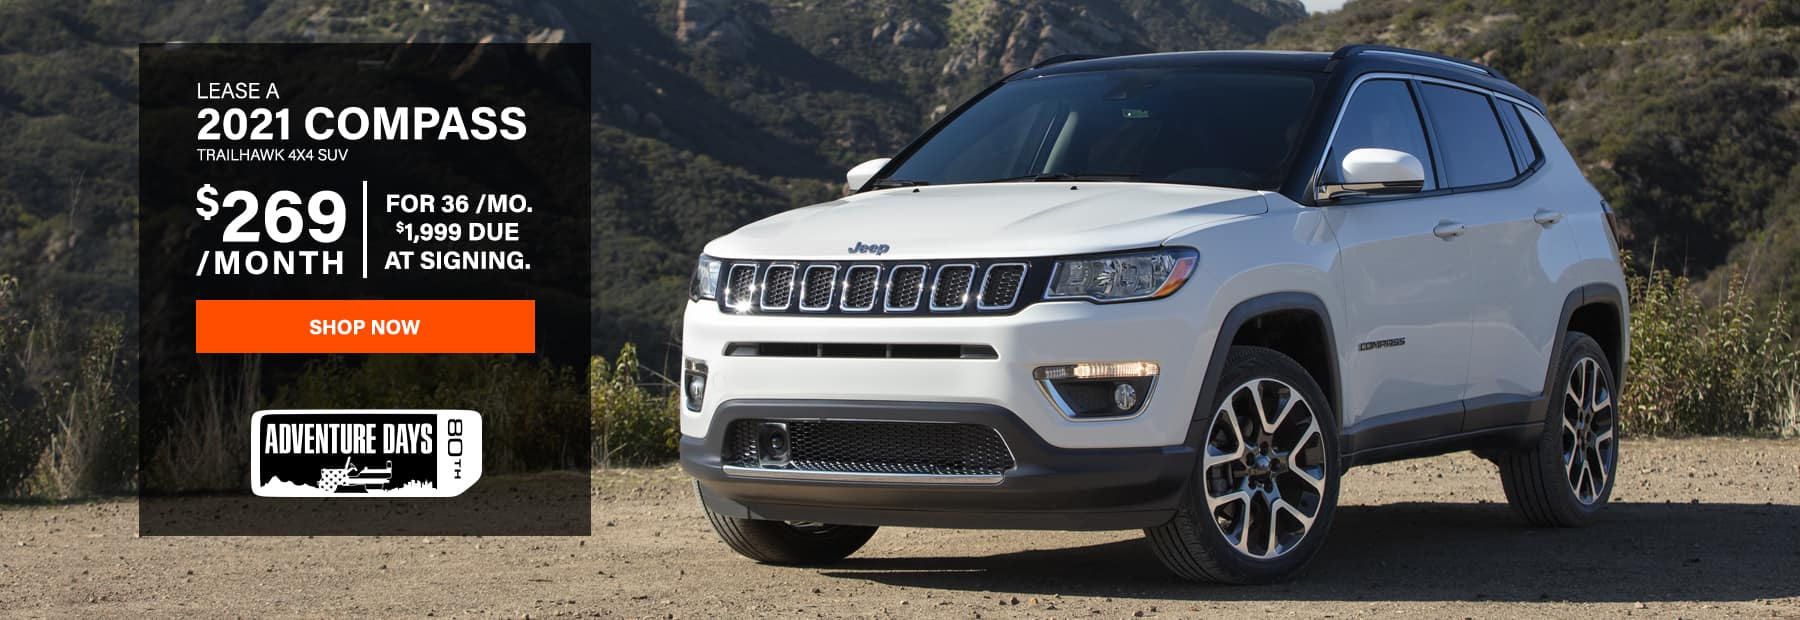 Lease a 2021 Jeep Compass Trailhawk 4x4 SUV for $269/mo. for 36 mos. with $1,999 down